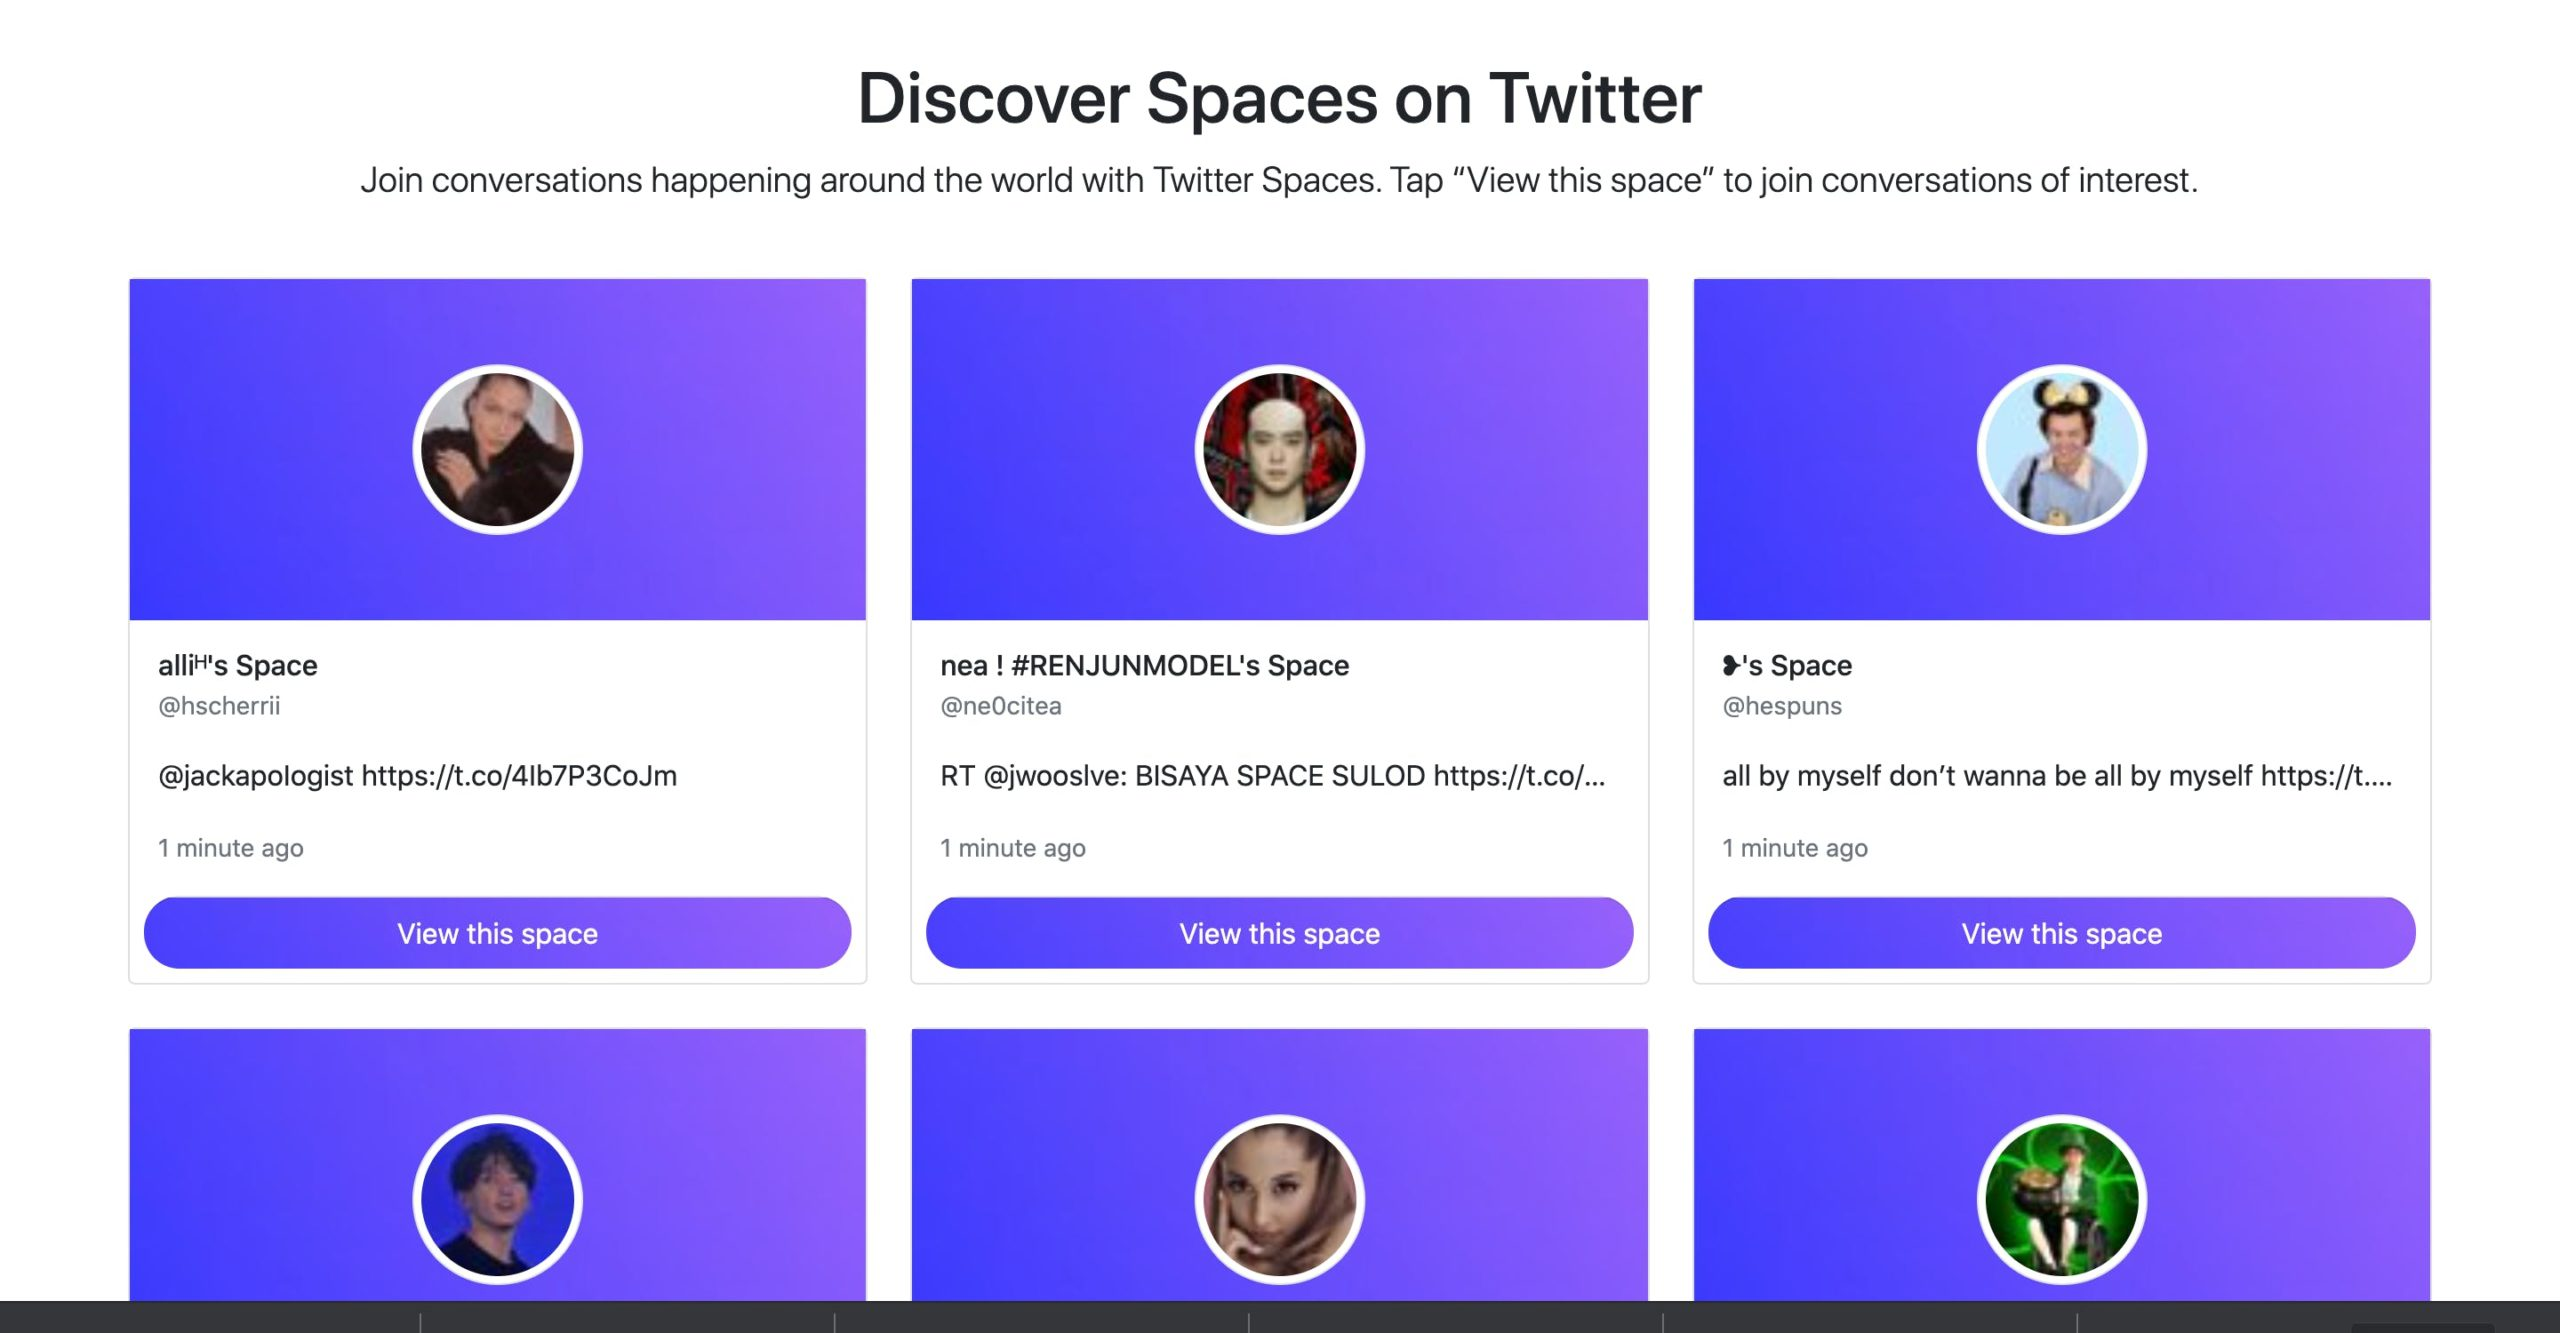 Spaces discovery